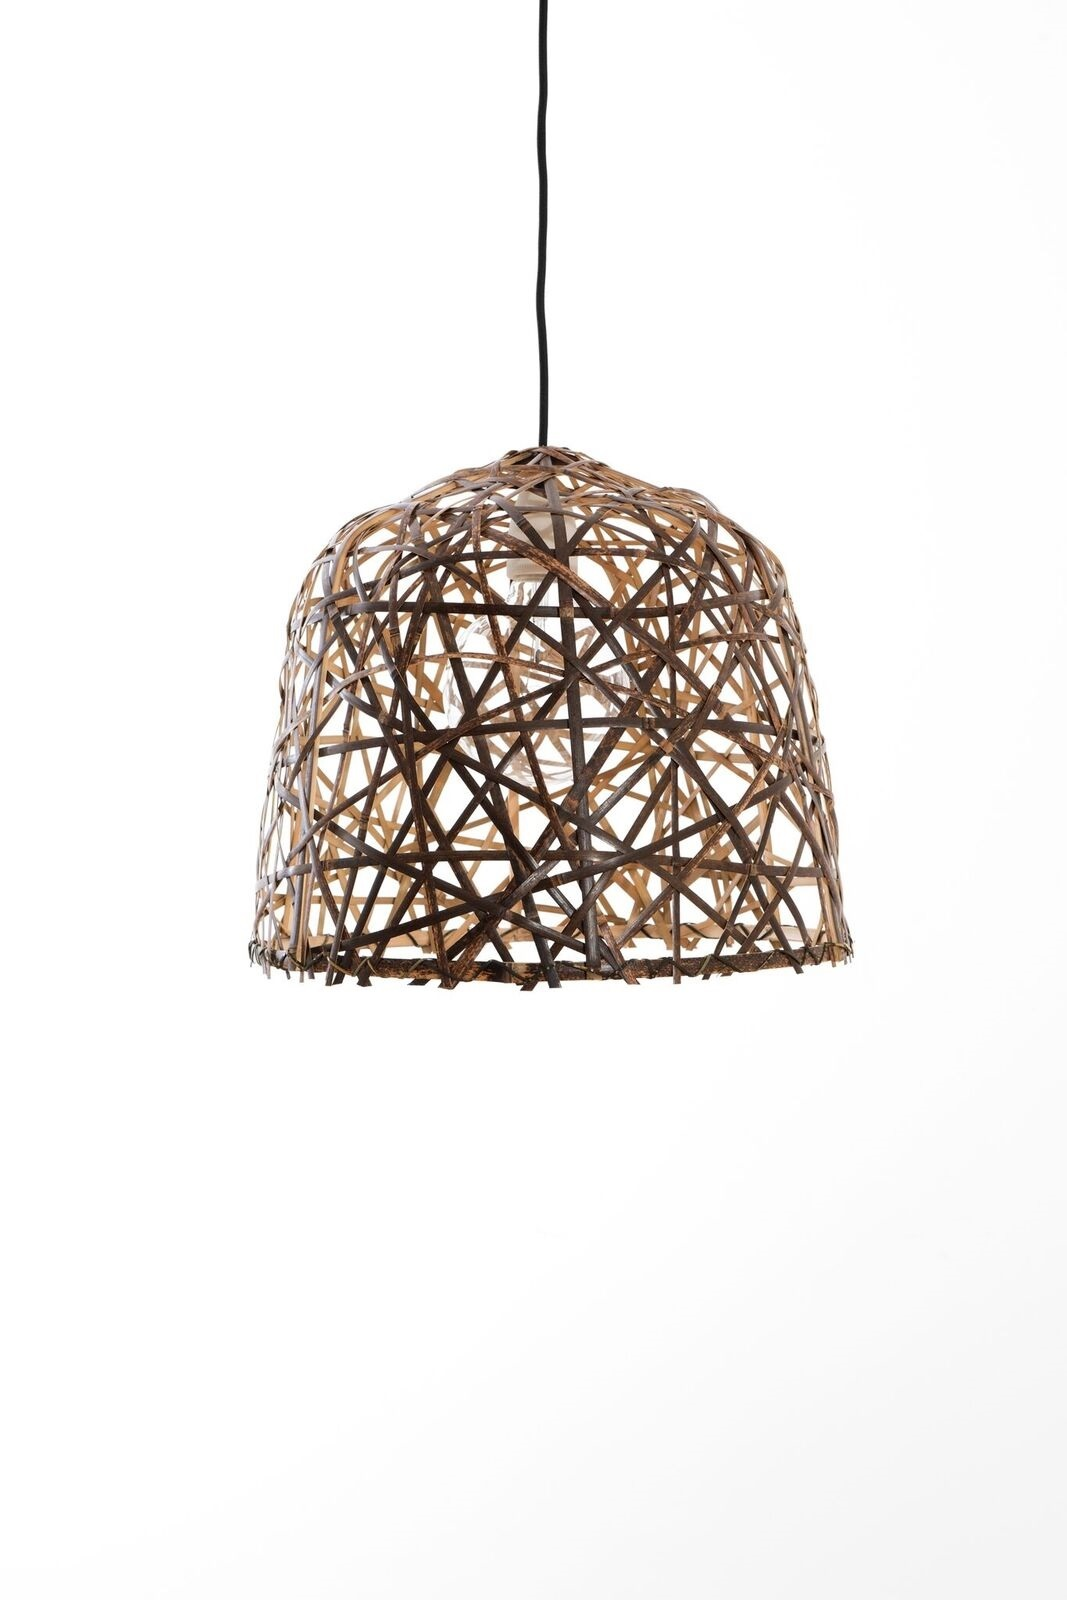 Ay illuminate Black Bird's Nest Small hanglamp